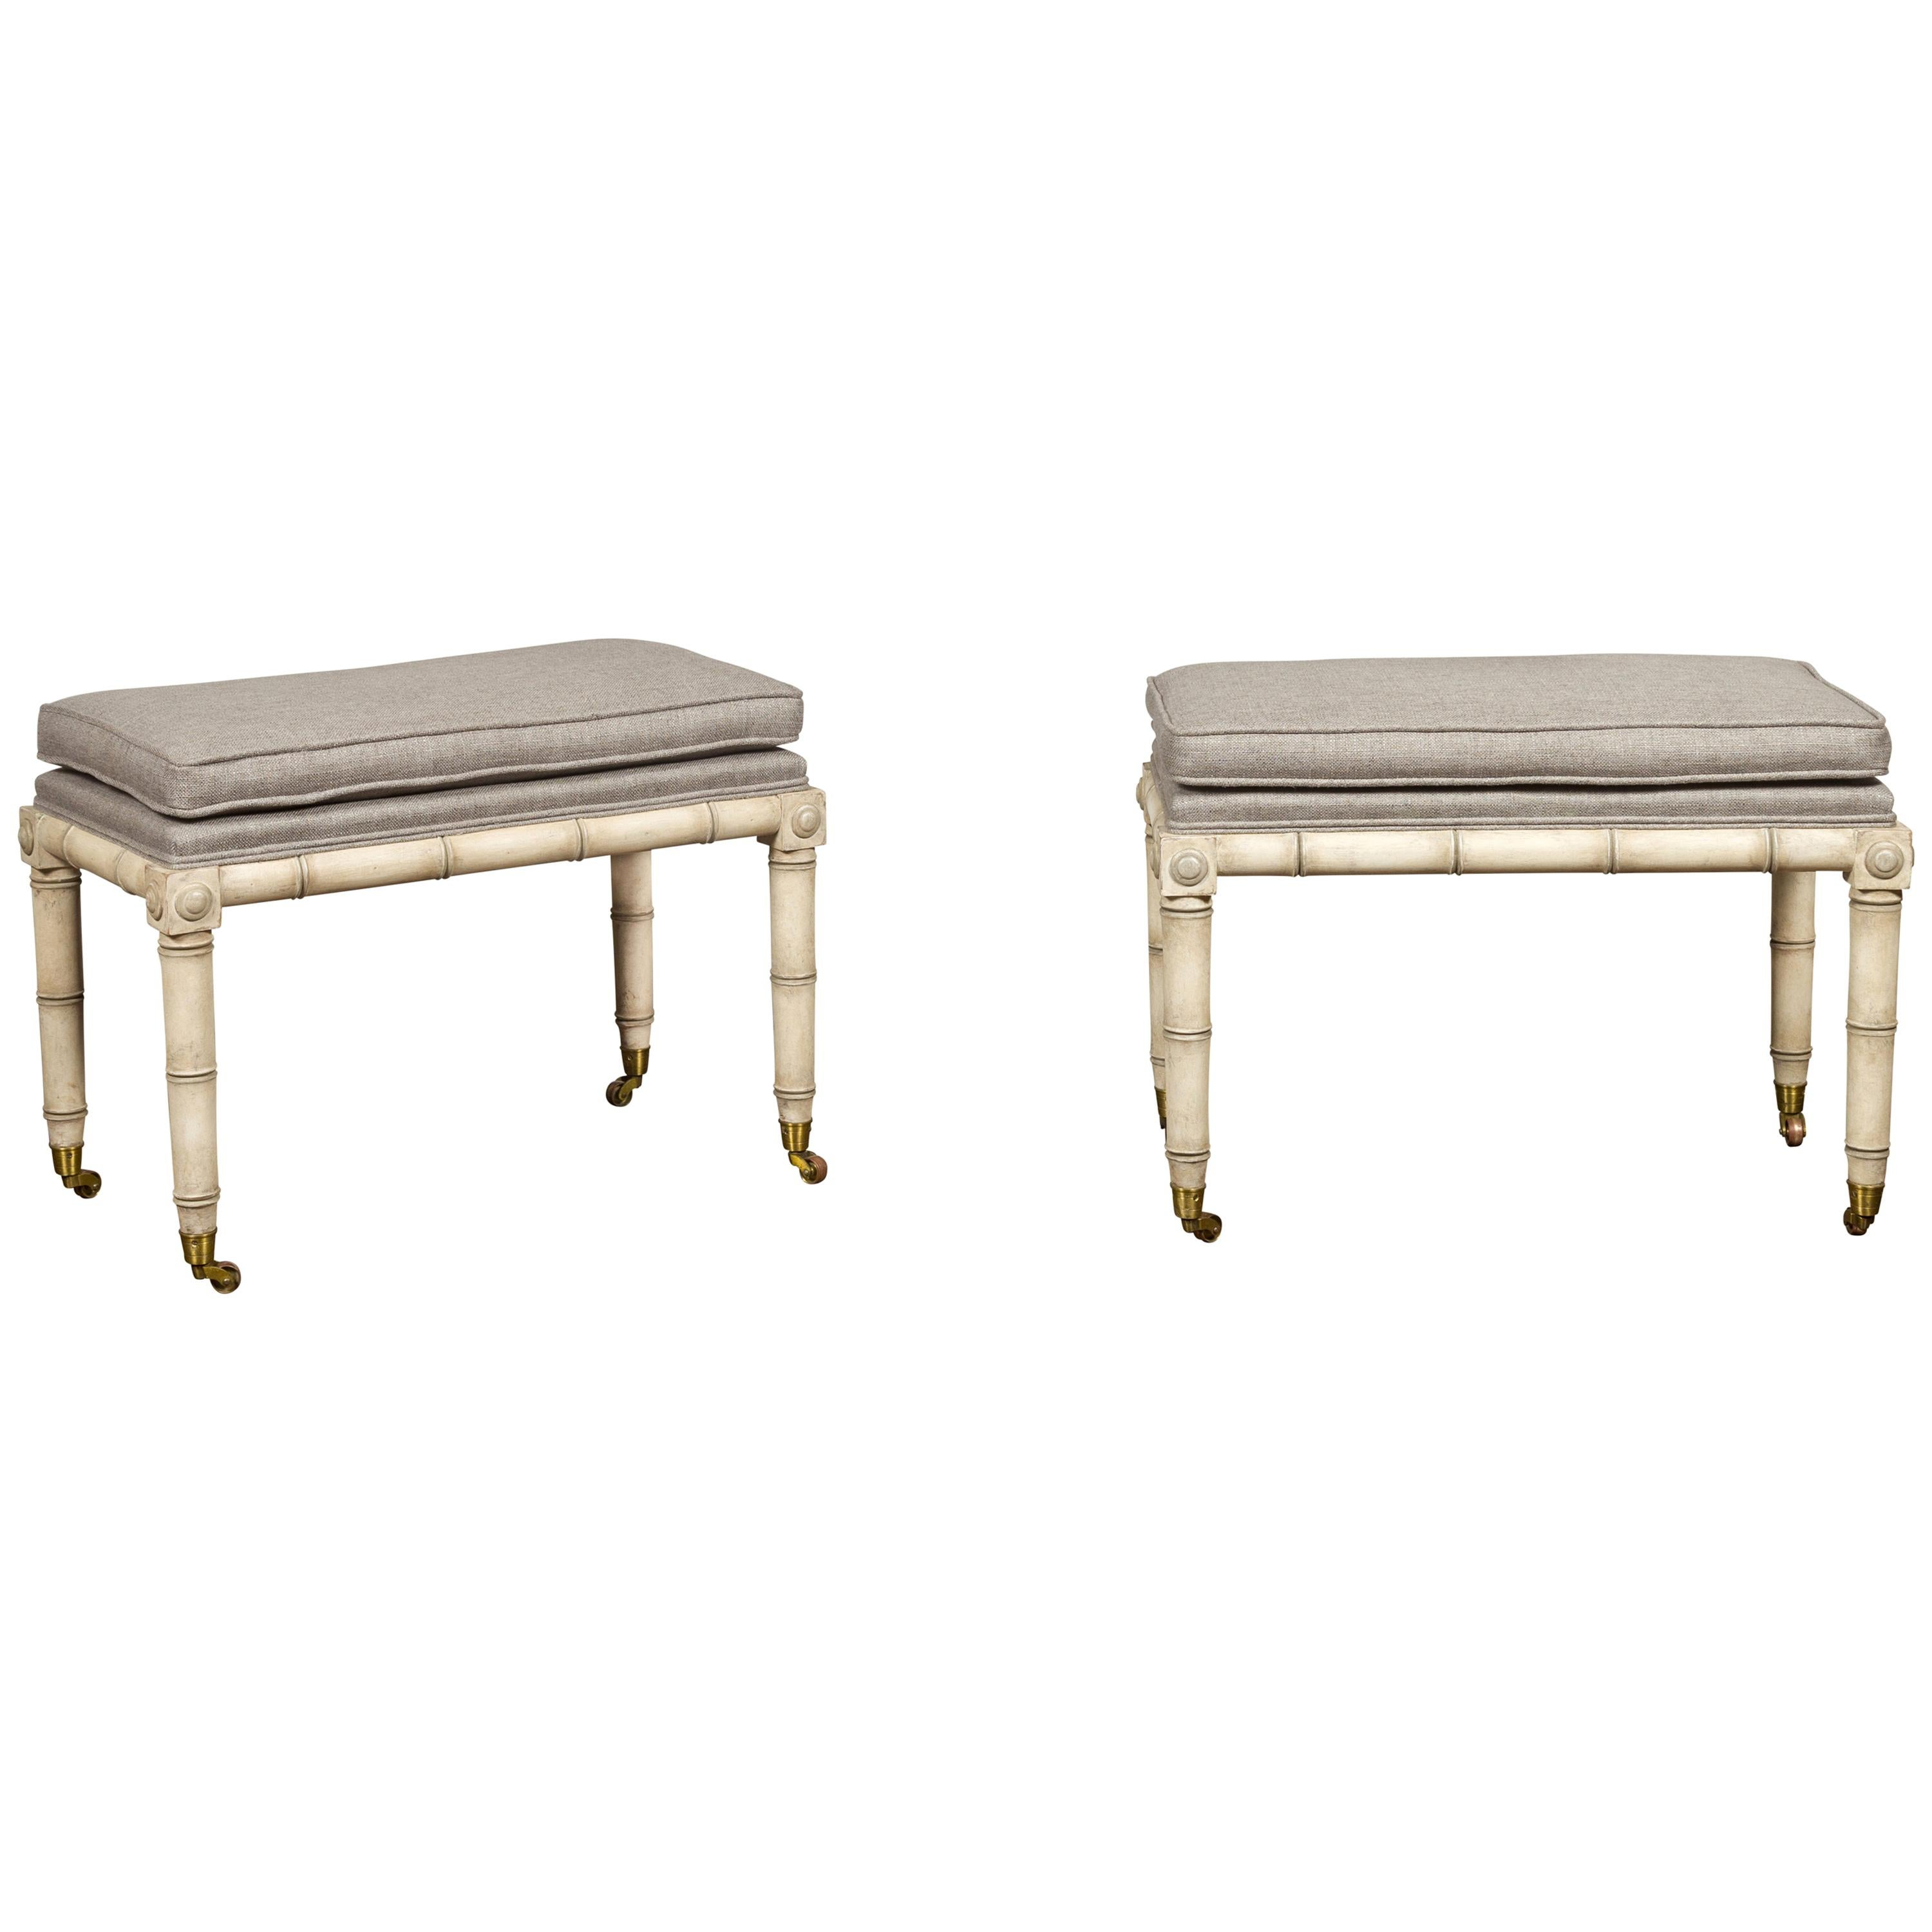 Pair of English Midcentury Painted Faux Bamboo Benches with New Upholstery